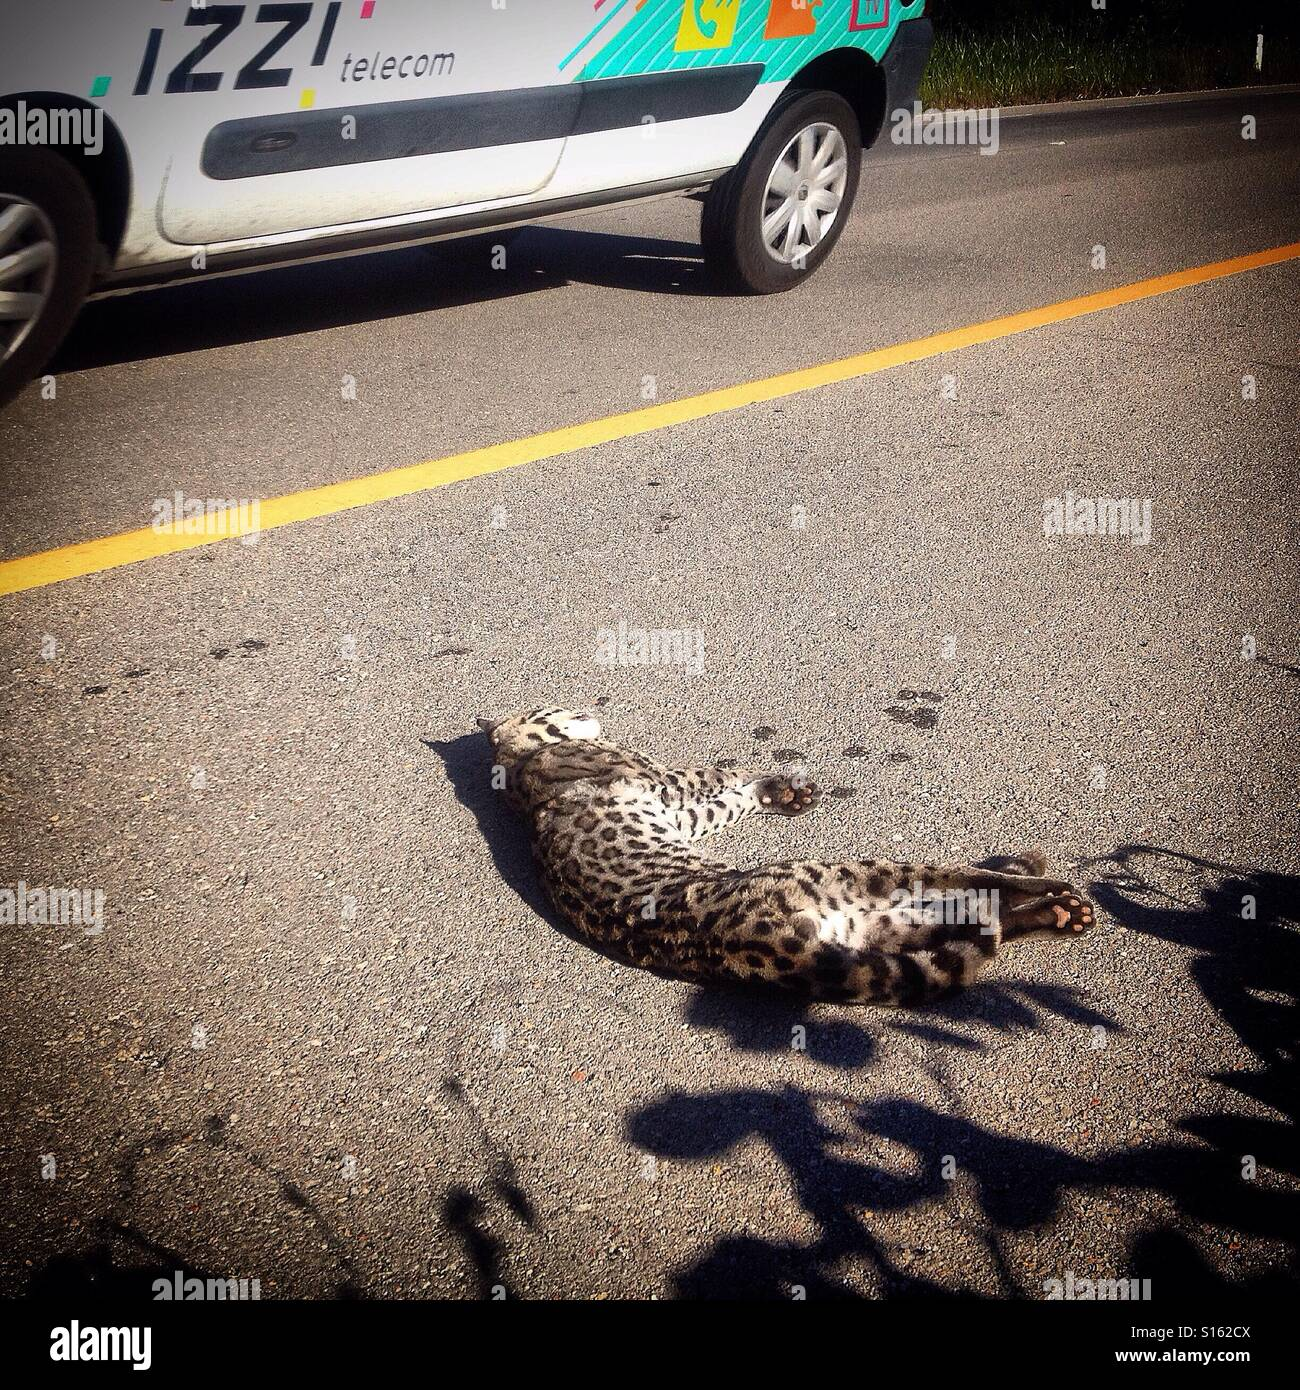 An ocelote, small tiger killed in a highway in Merida, Yucatan, Mexico. Roads kill millions of animals, from insects to big animals every year and the new roads are threatening Yucatan's biodiversity. Stock Photo